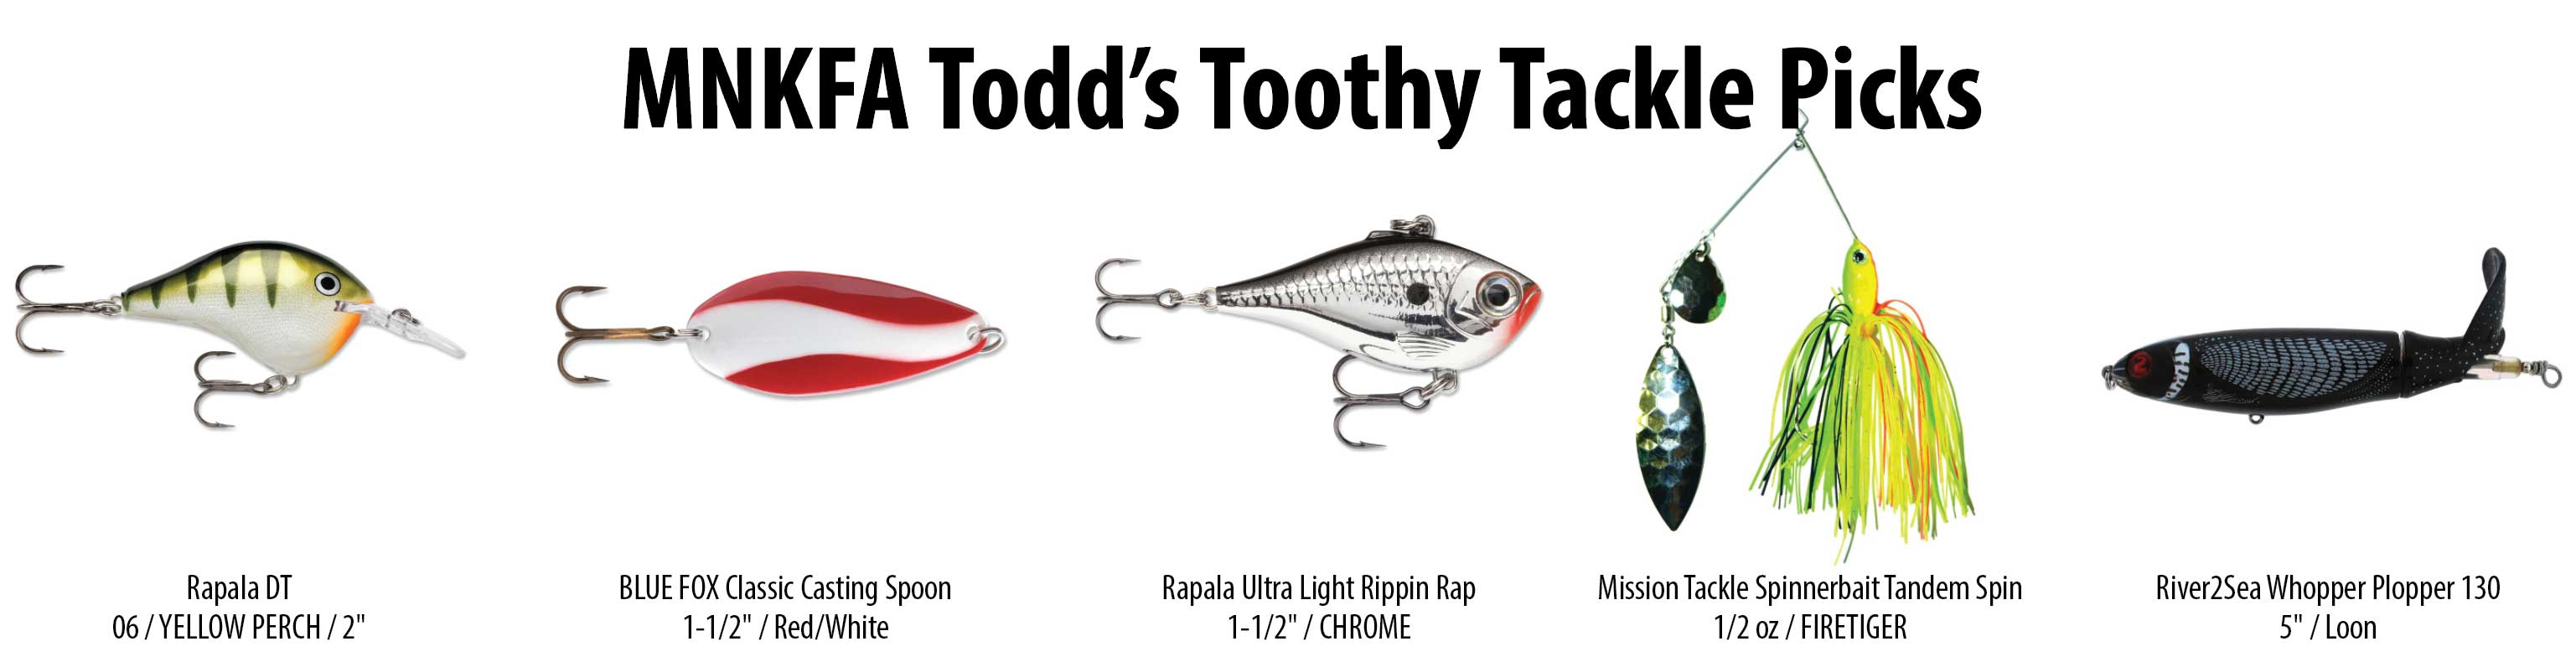 Toothy Tackle Picks